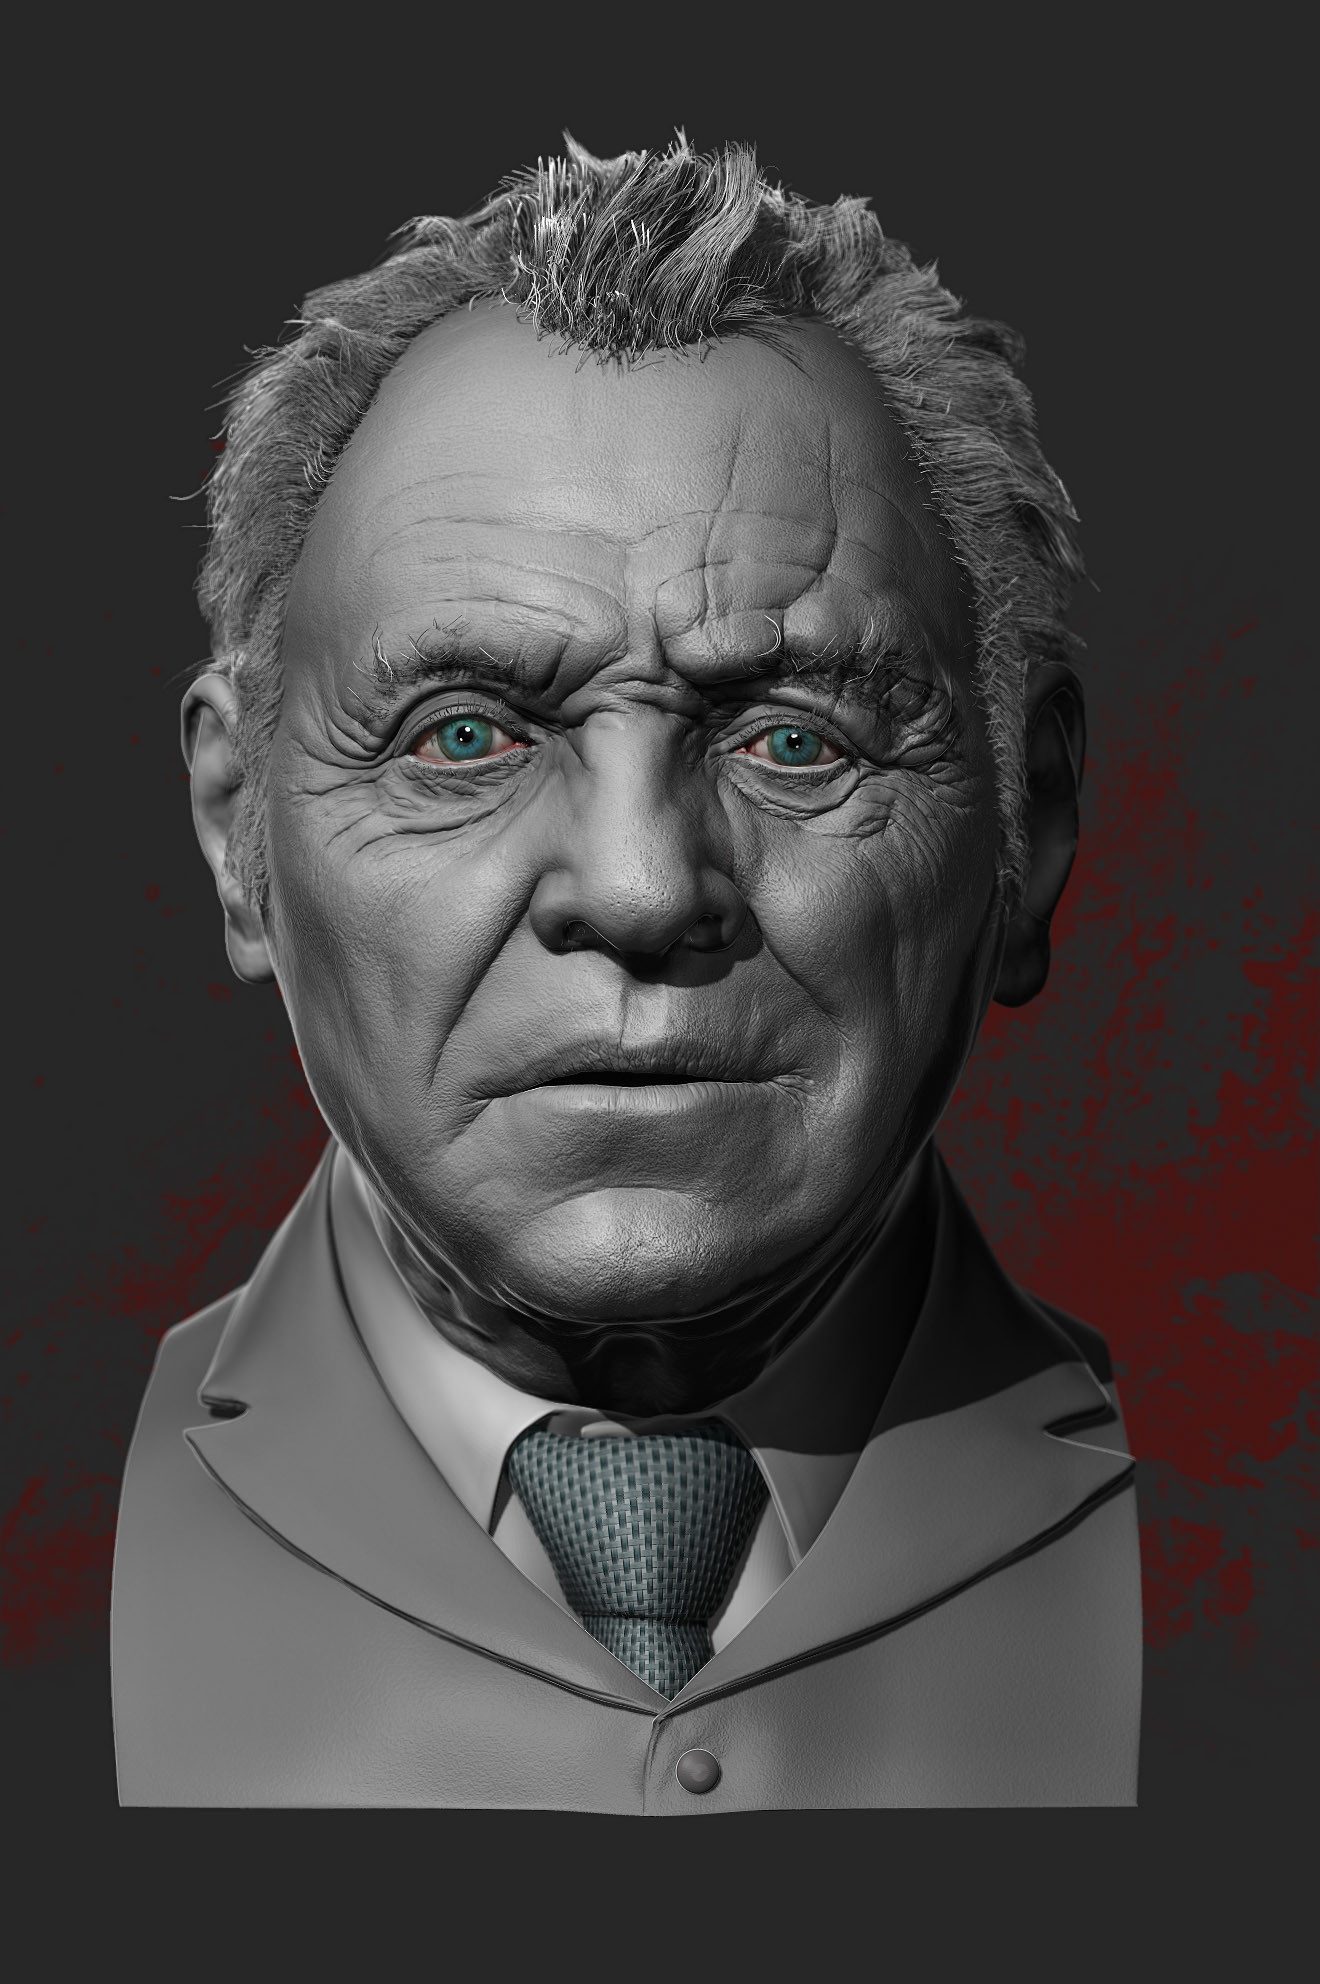 2017.03.19  Likness sculpt of Anthony Hopkins Zbrush/Photoshop